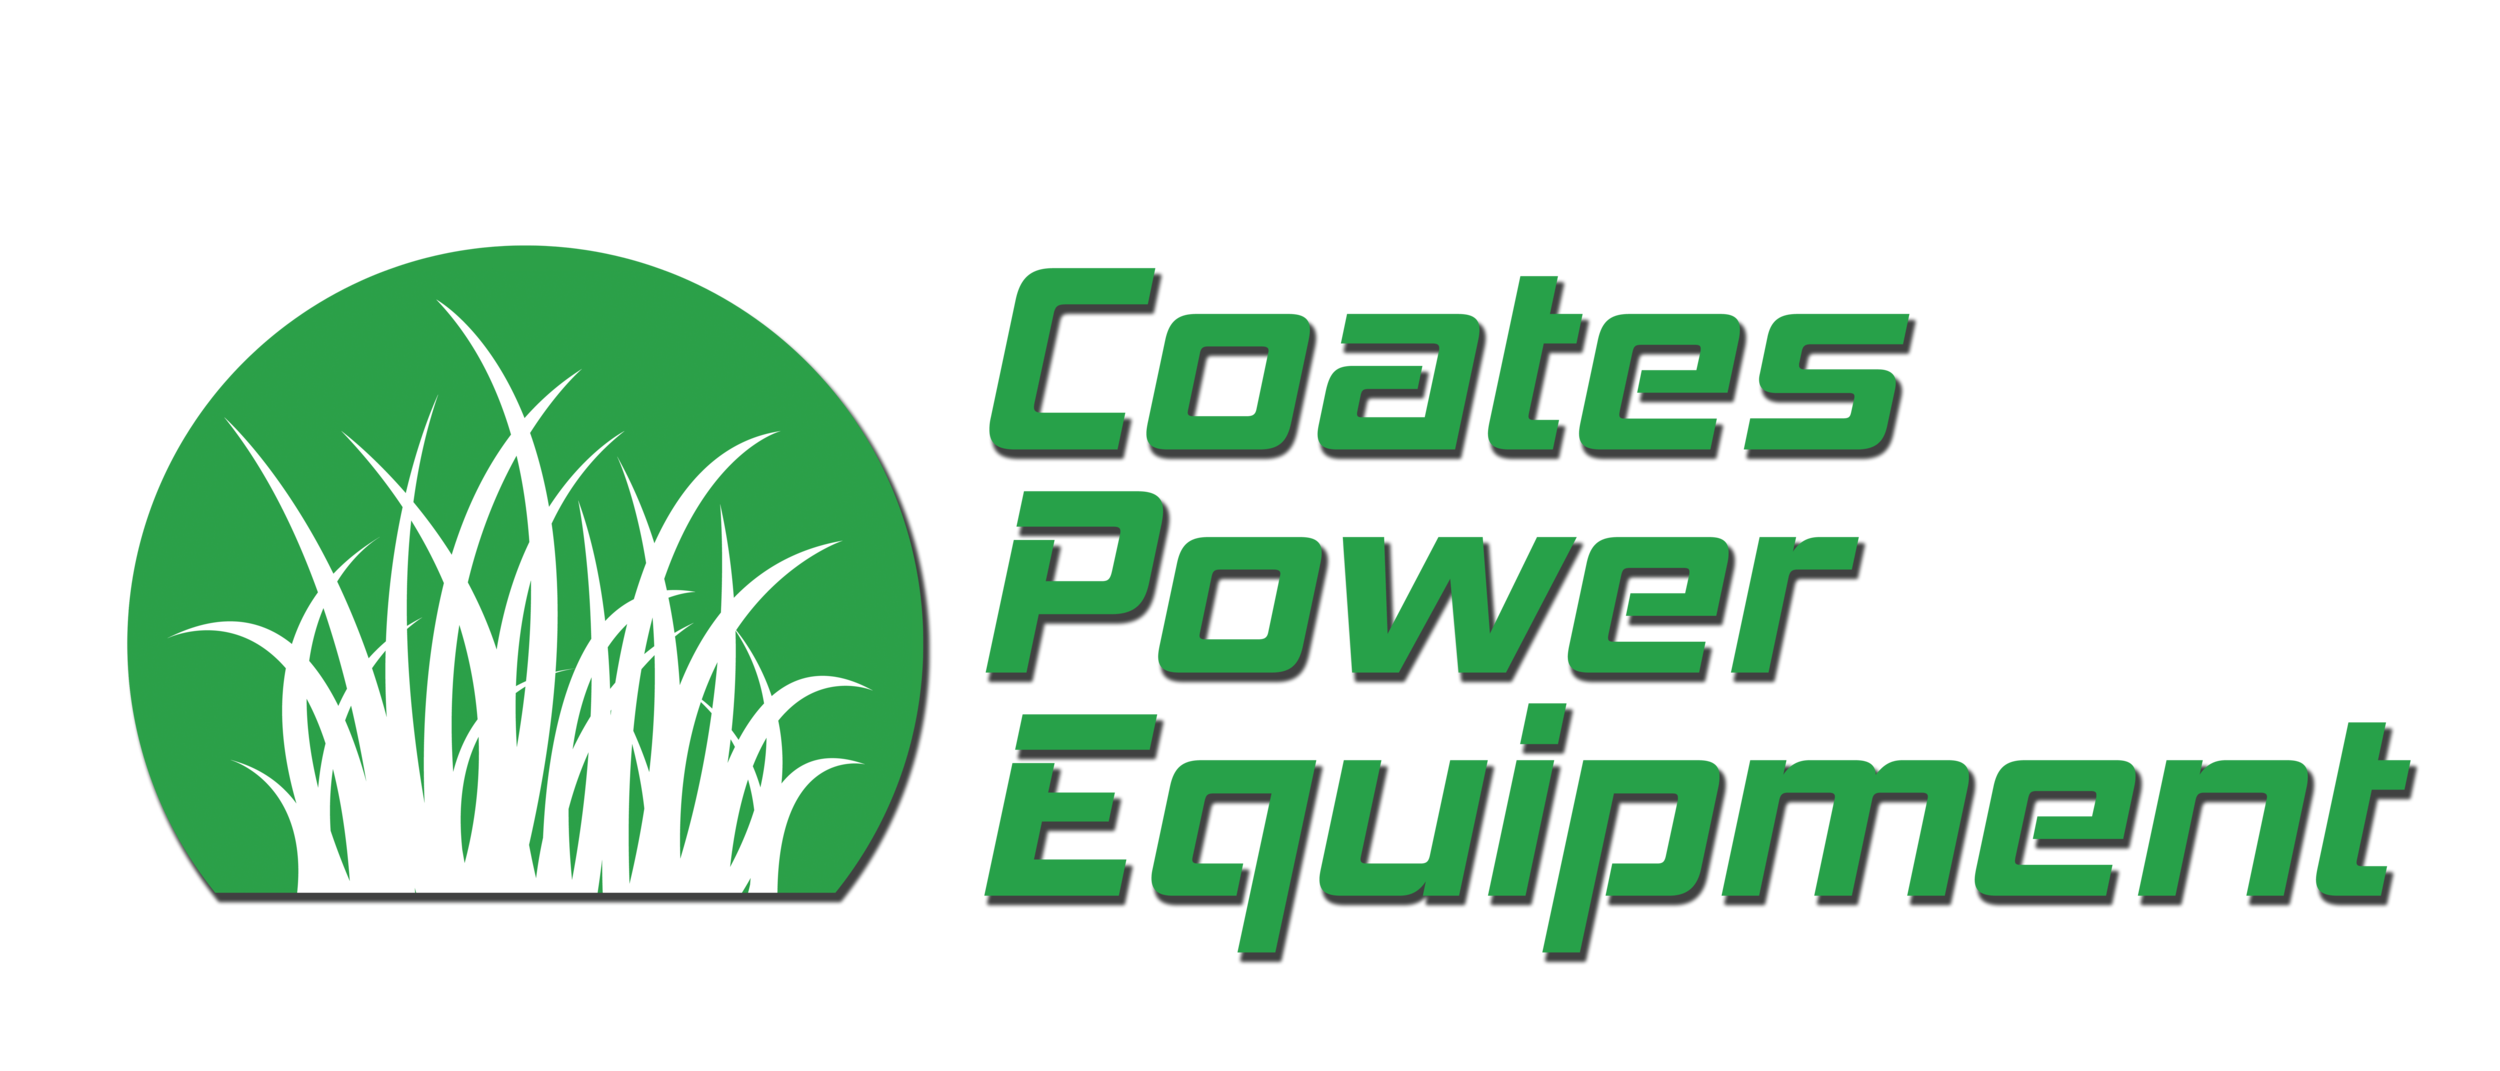 Coates Power Equipment Logo No Border Drop Shadow.png